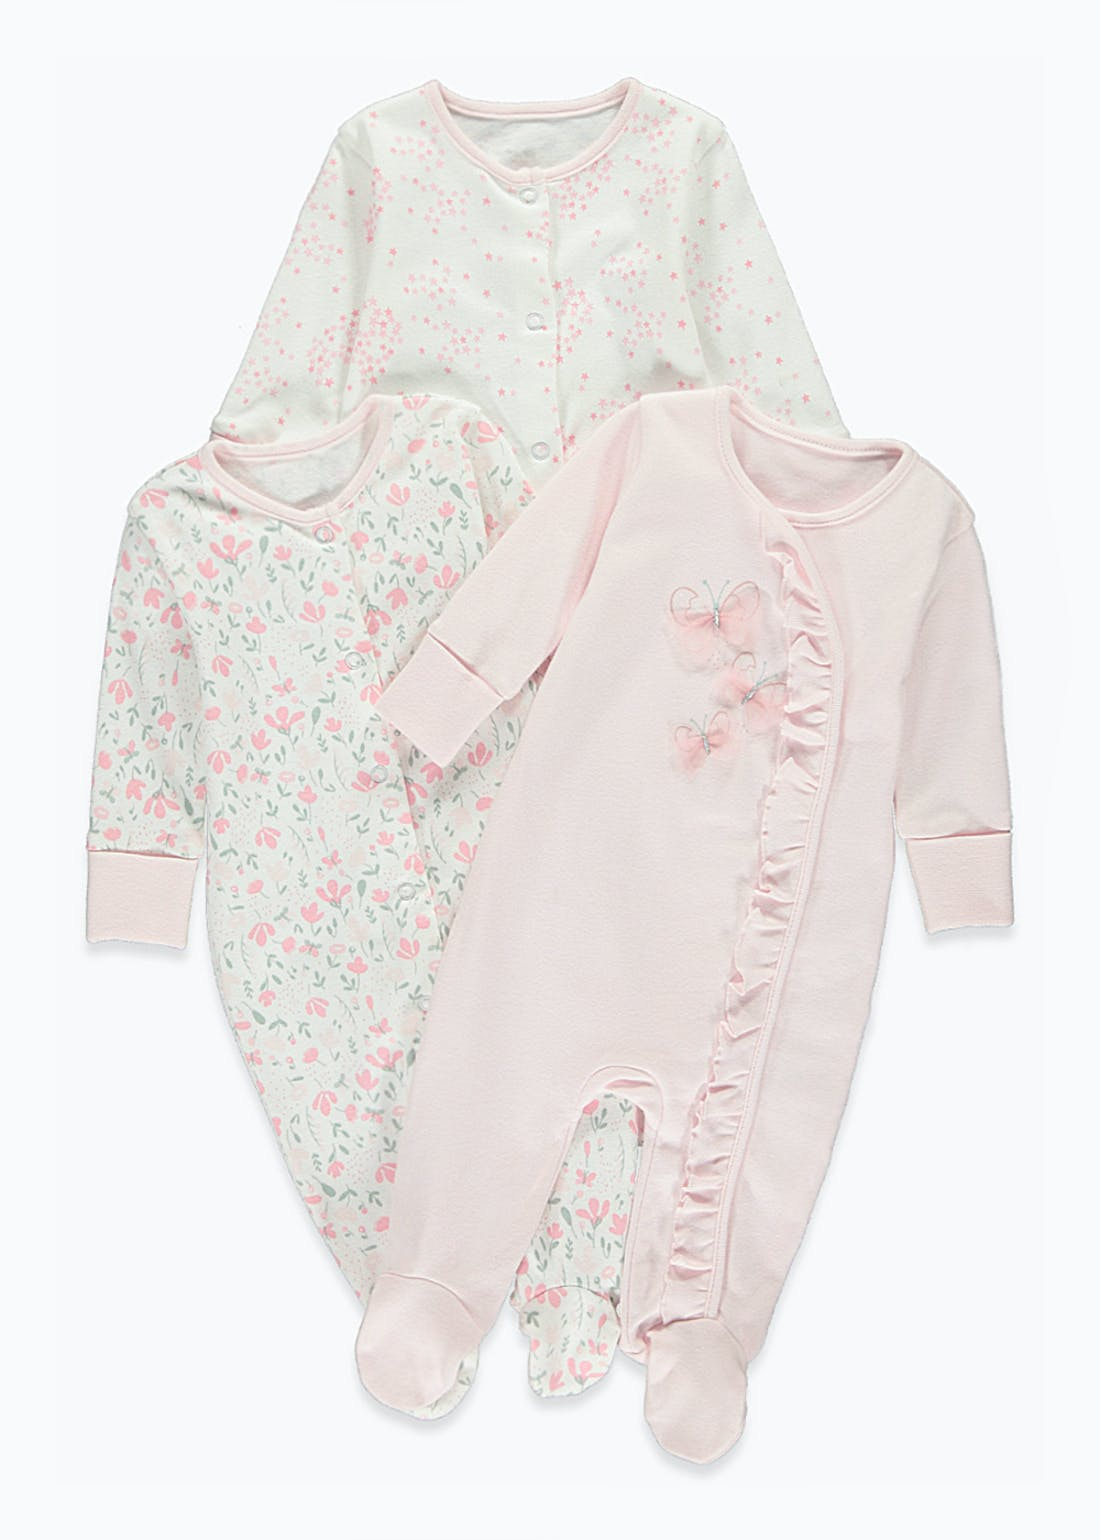 Girls 3 Pack Floral Frill Baby Grows (Tiny Baby-18mths)